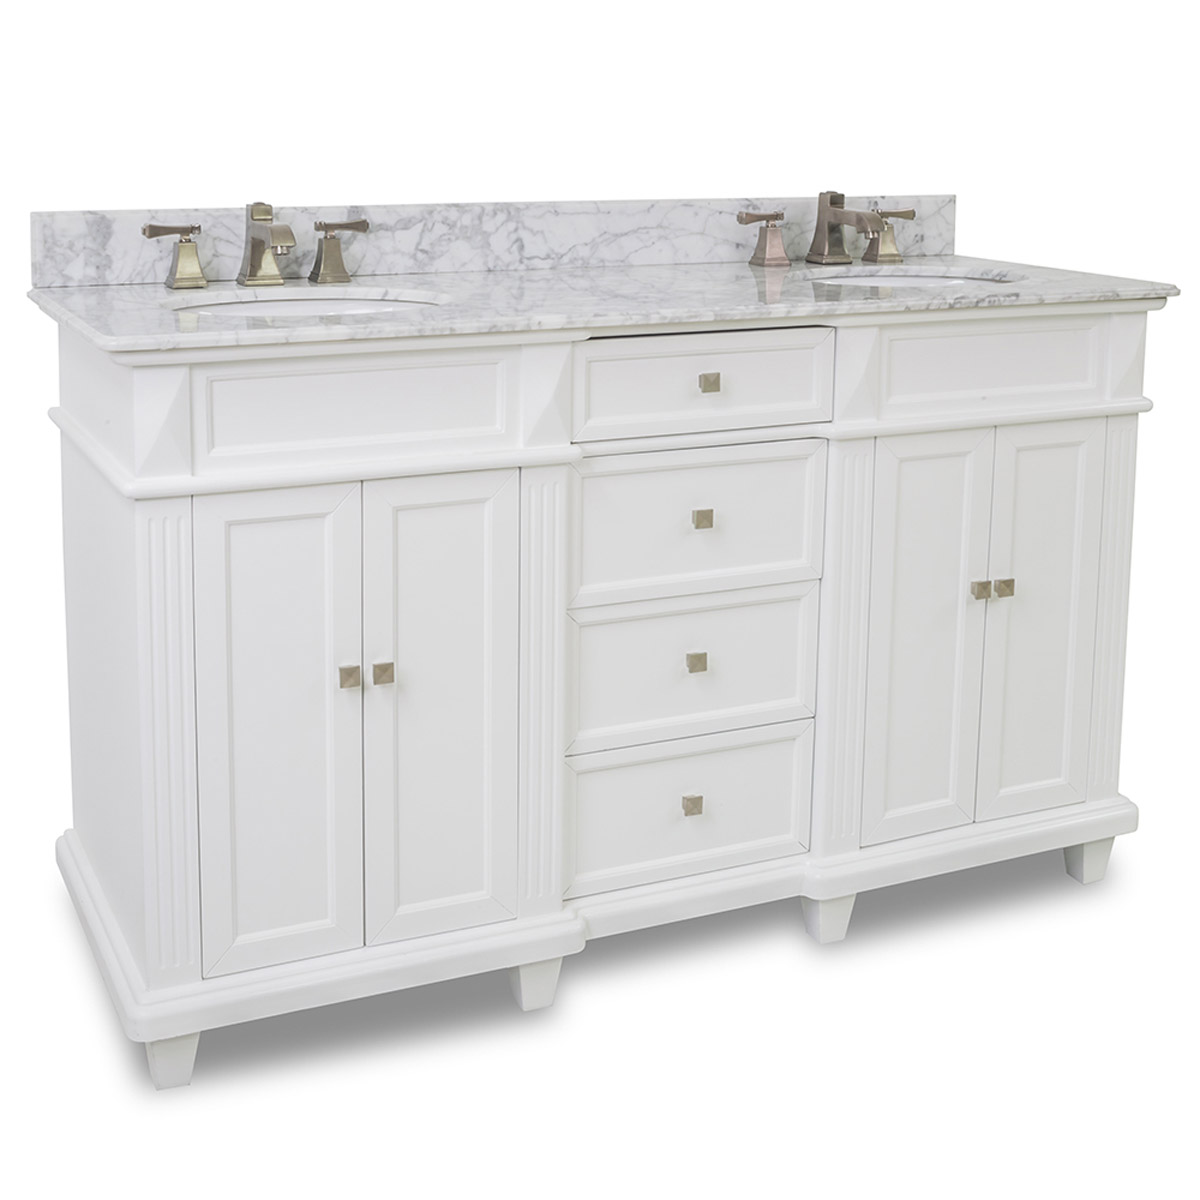 "Bathroom Vanities Double Sink 60 Inches 60"" jupiter double sink vanity - white - bathgems"